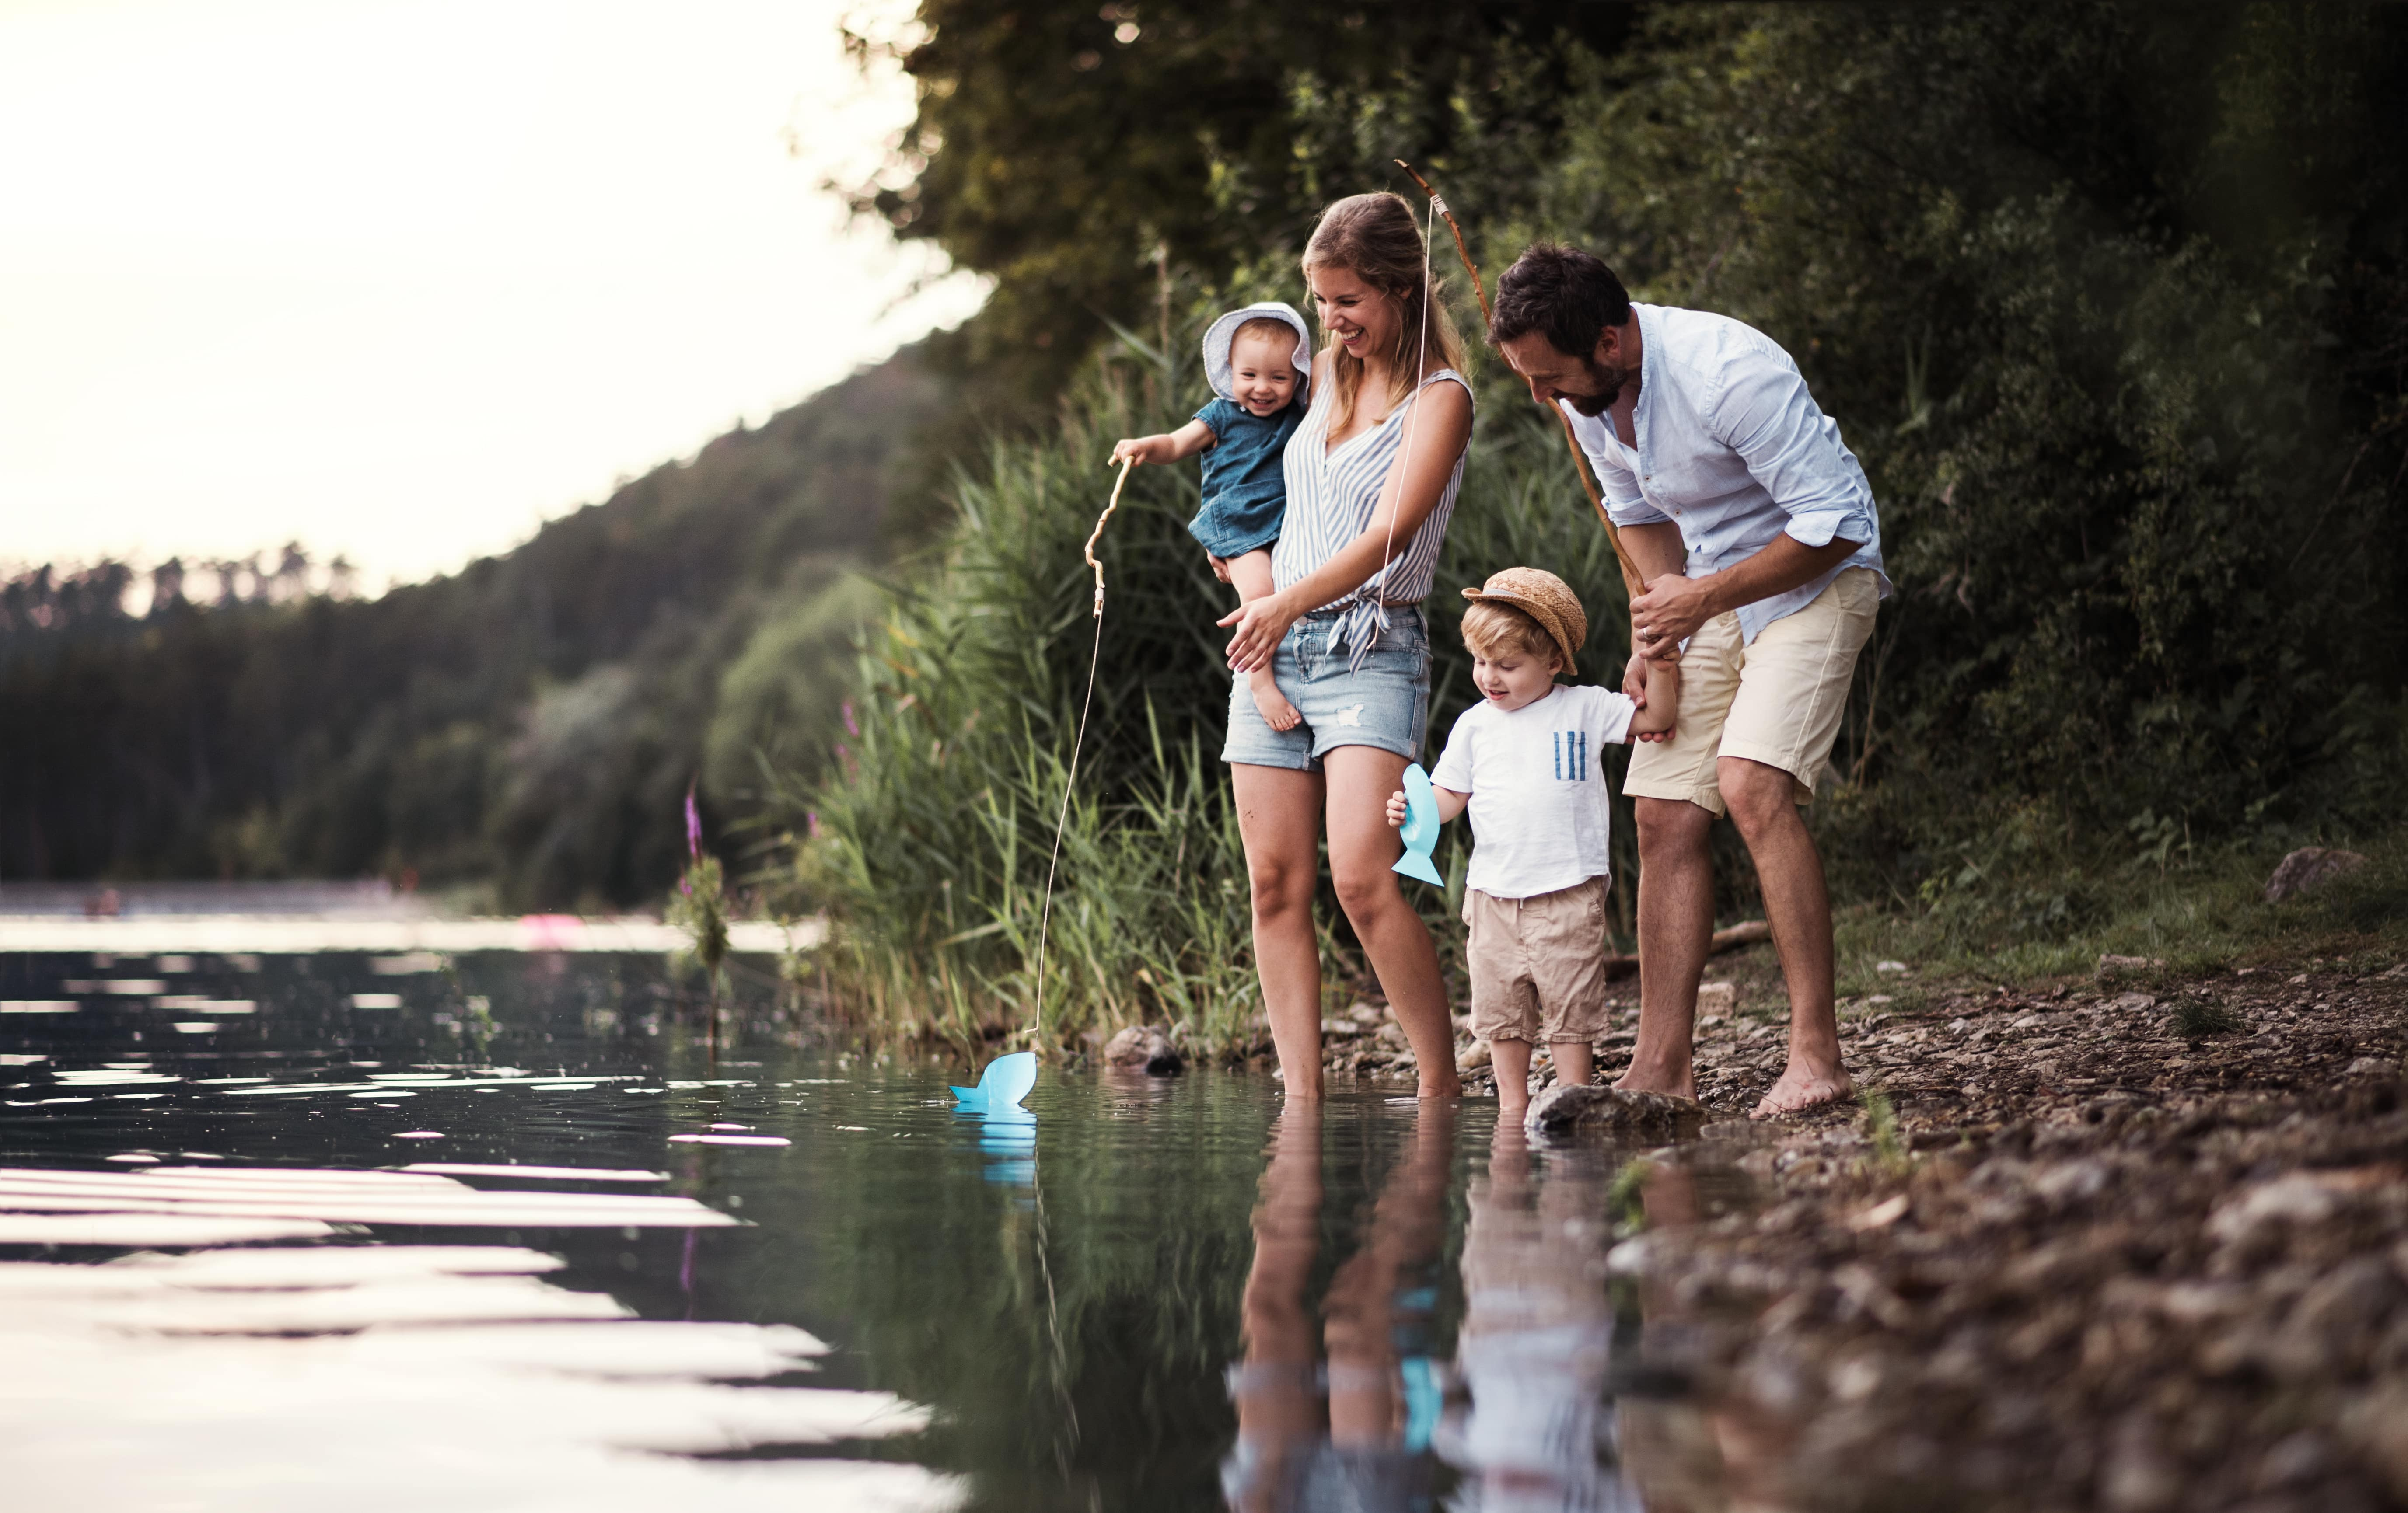 Family in the nature